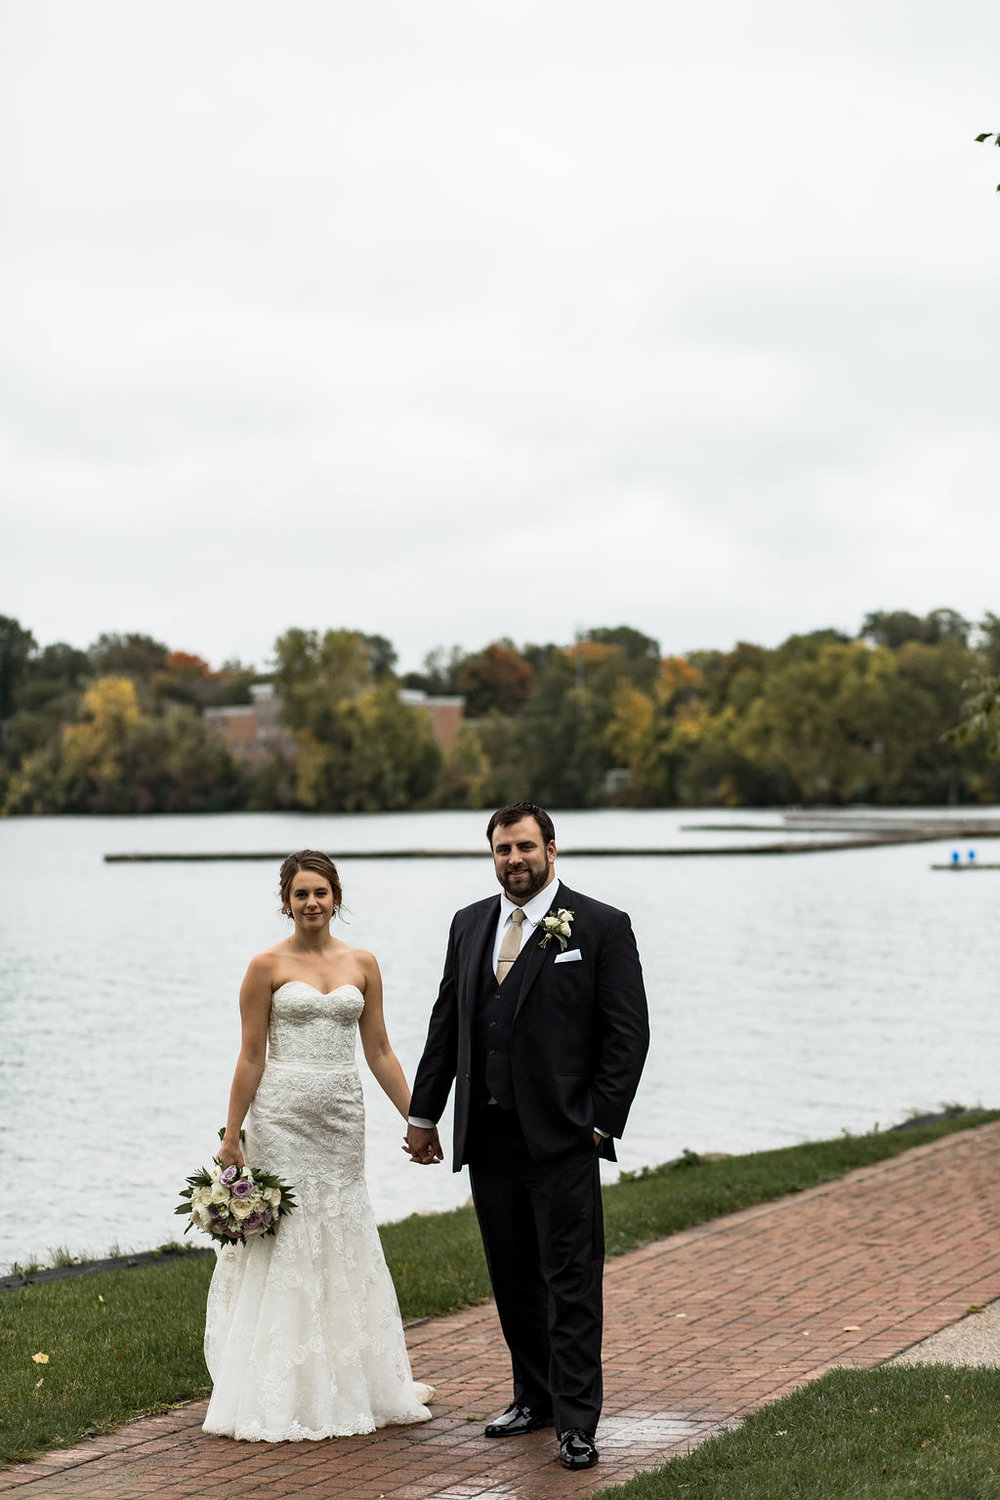 best_midwest_wedding_photographer_JMH_photography-76.jpg